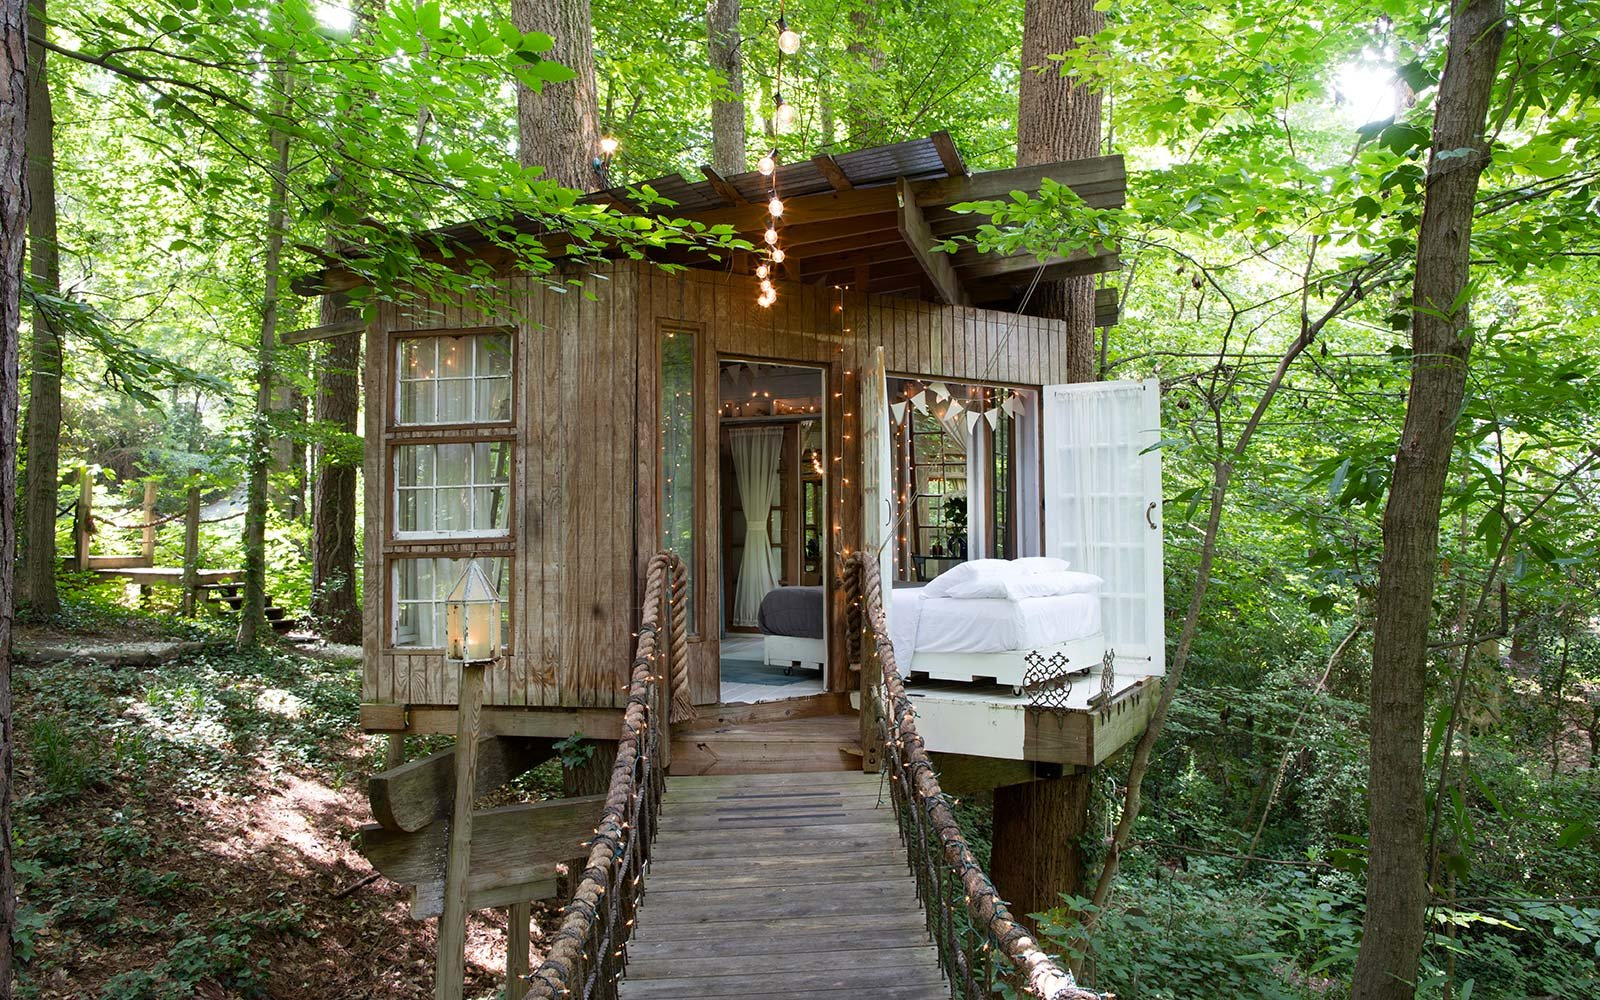 Airbnb Holiday Vacation Rental Treetop Atlanta Georgia